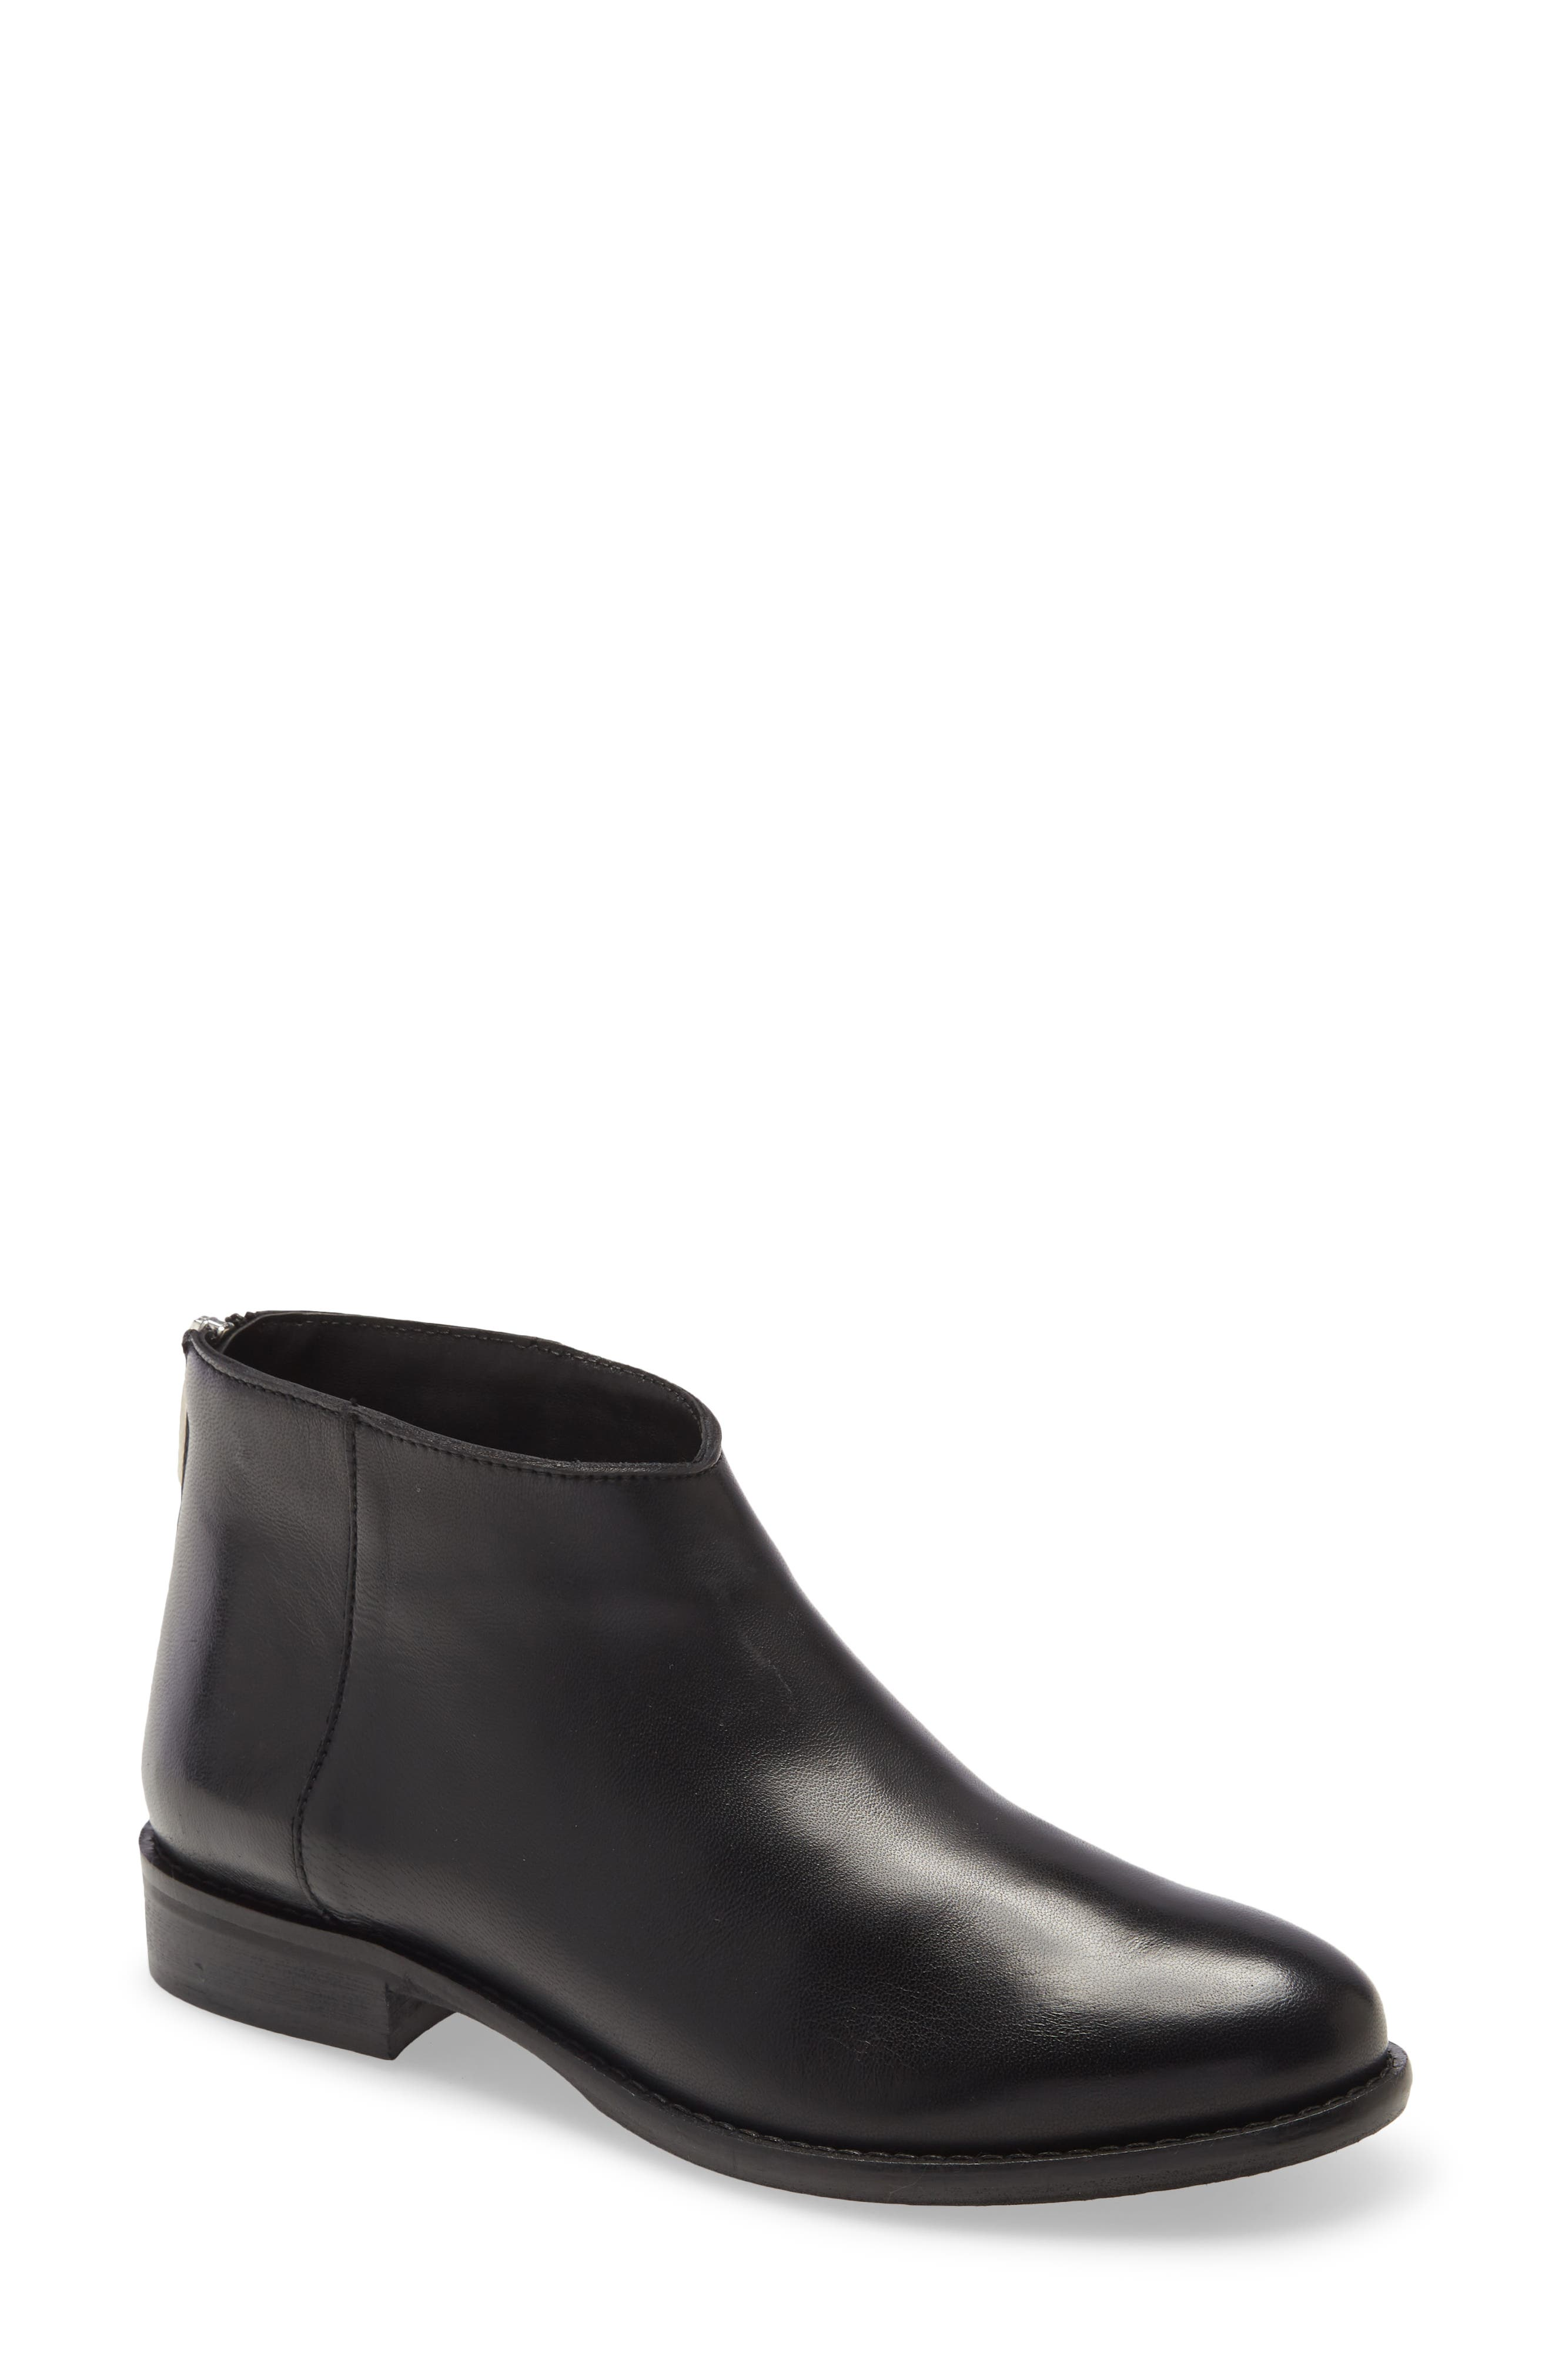 A low-profile silhouette defines a menswear-inspired boot made from smooth leather and fit with a cushy footbed. Style Name: Cordani Blaise Ankle Boot (Women). Style Number: 6102534. Available in stores.